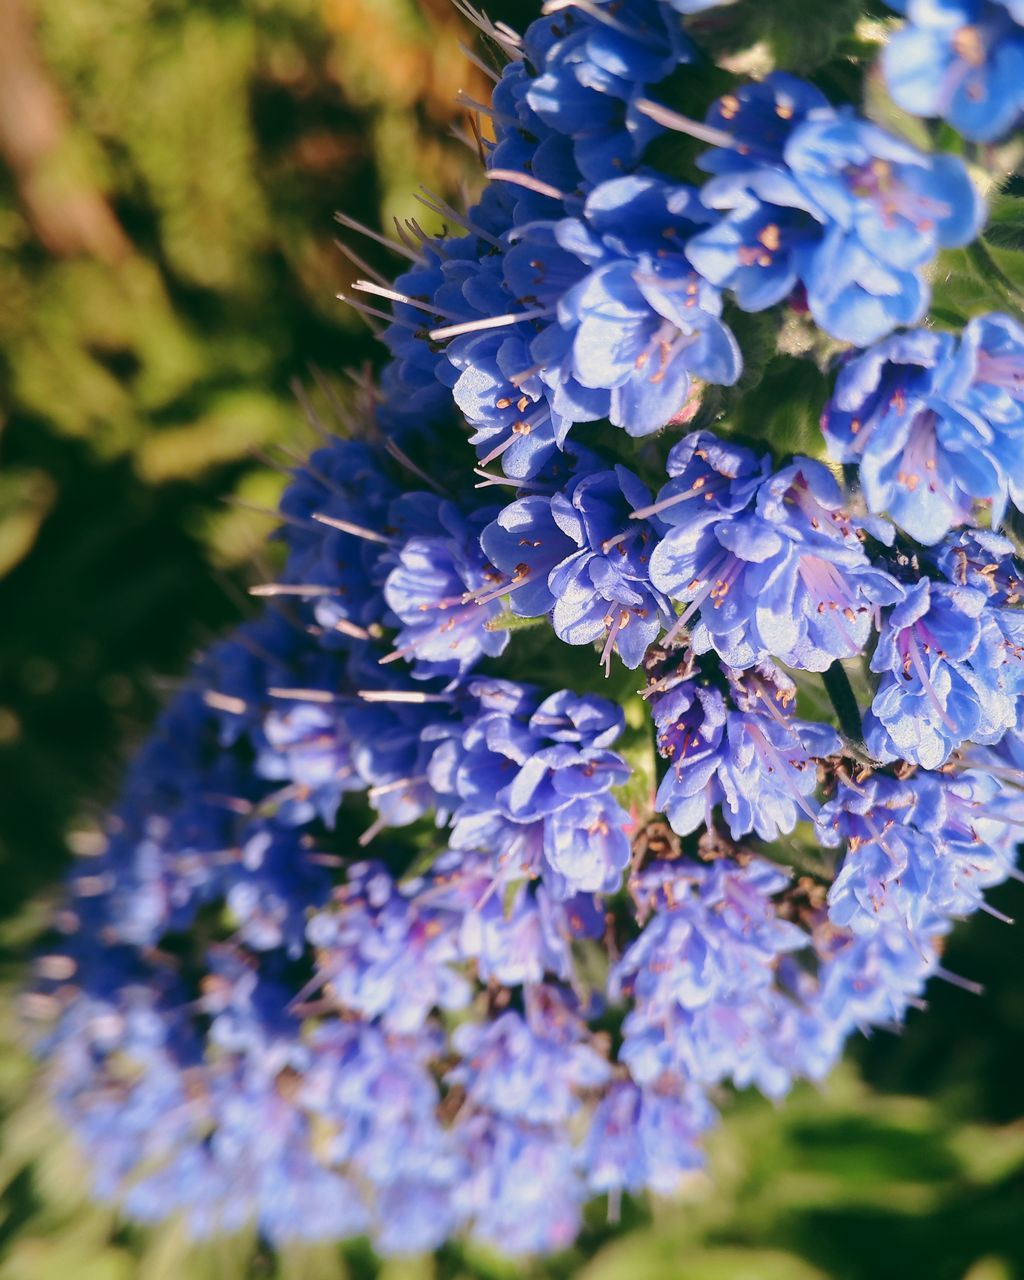 flower, purple, selective focus, nature, beauty in nature, growth, fragility, scented, outdoors, plant, close-up, freshness, day, no people